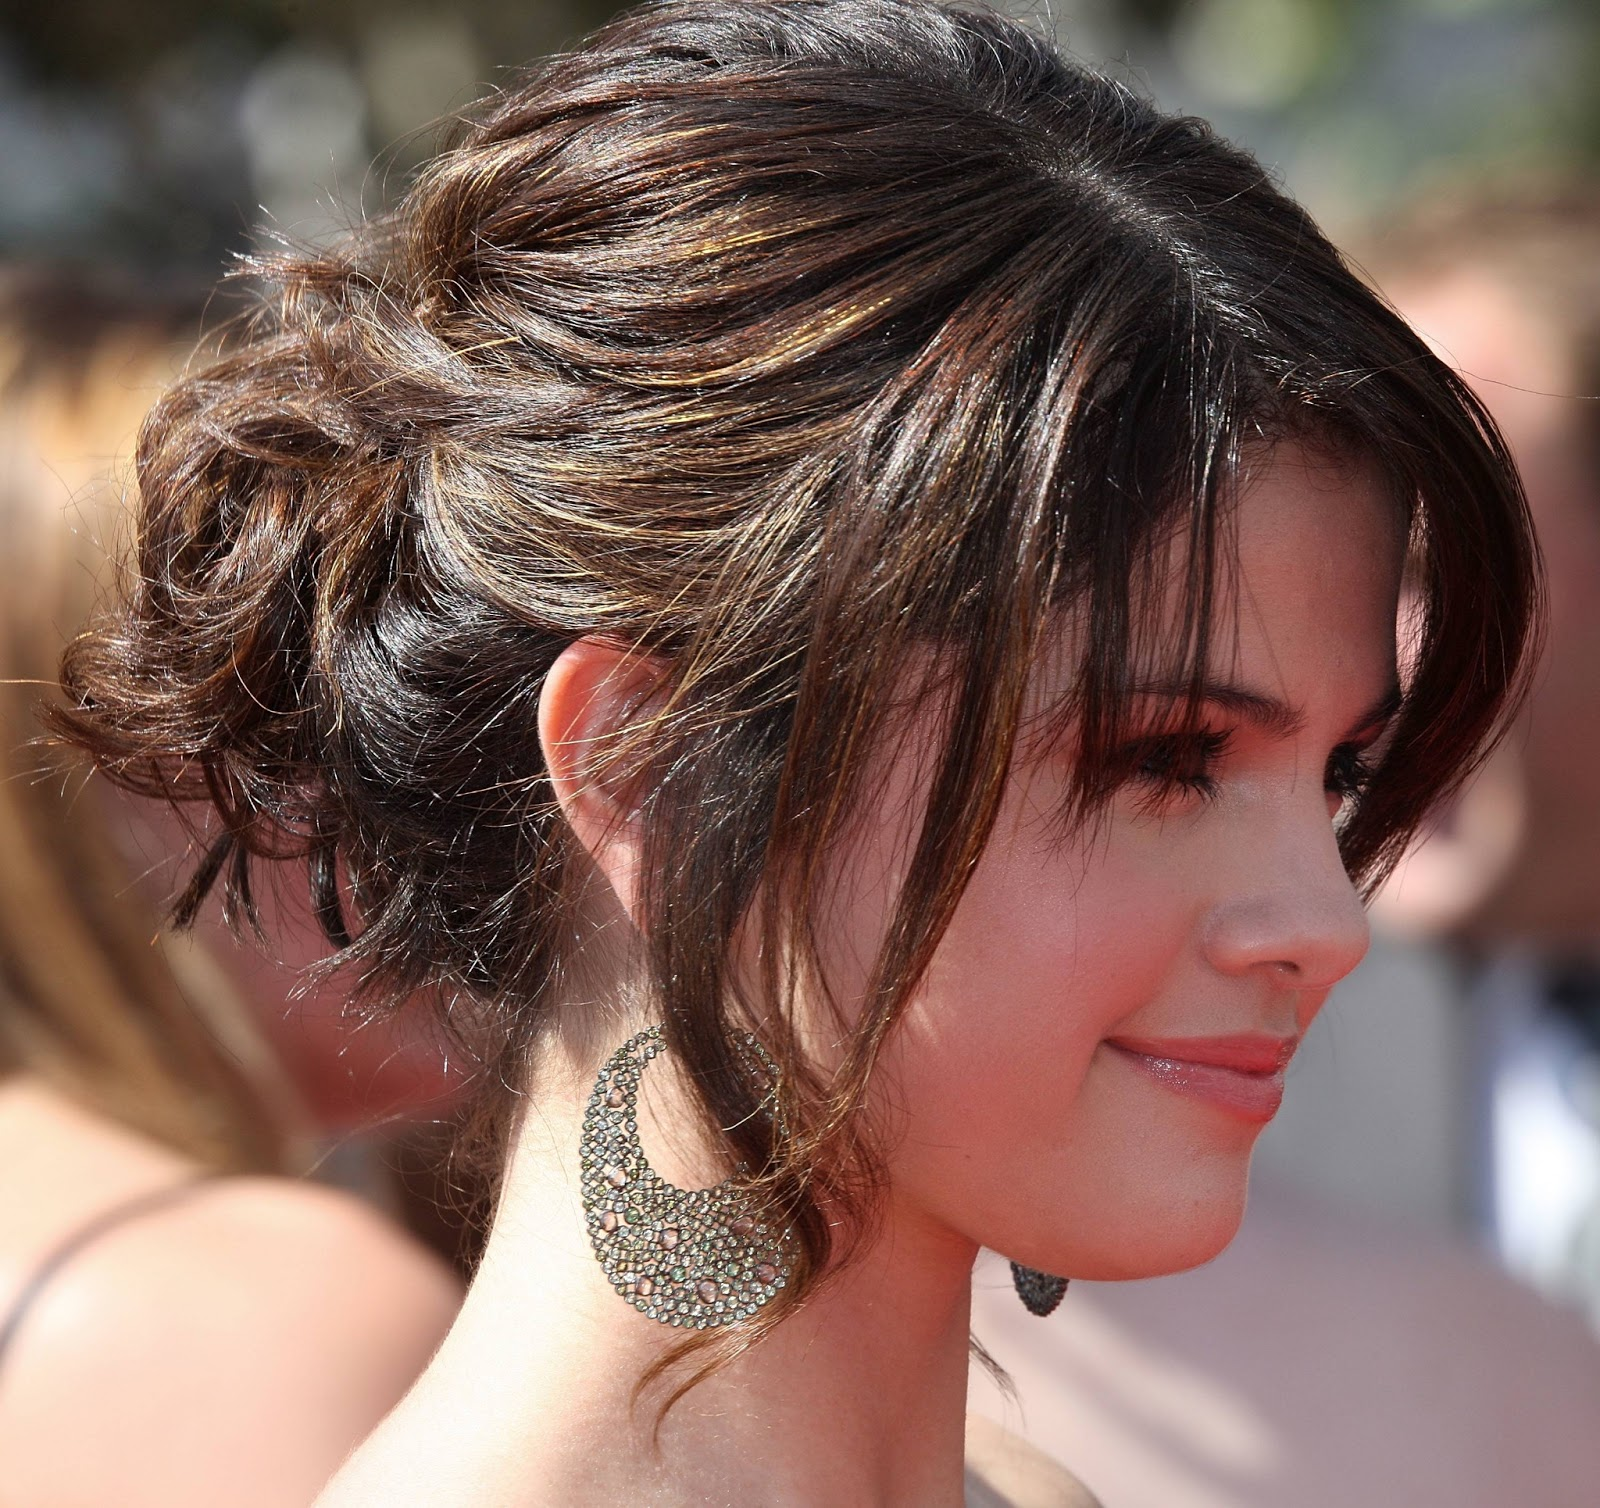 Stylish Prom Hairstyles for Girls  Haircuts Gallery 2013. 1600 x 1508.Indian Hairstyles For Girls Videos